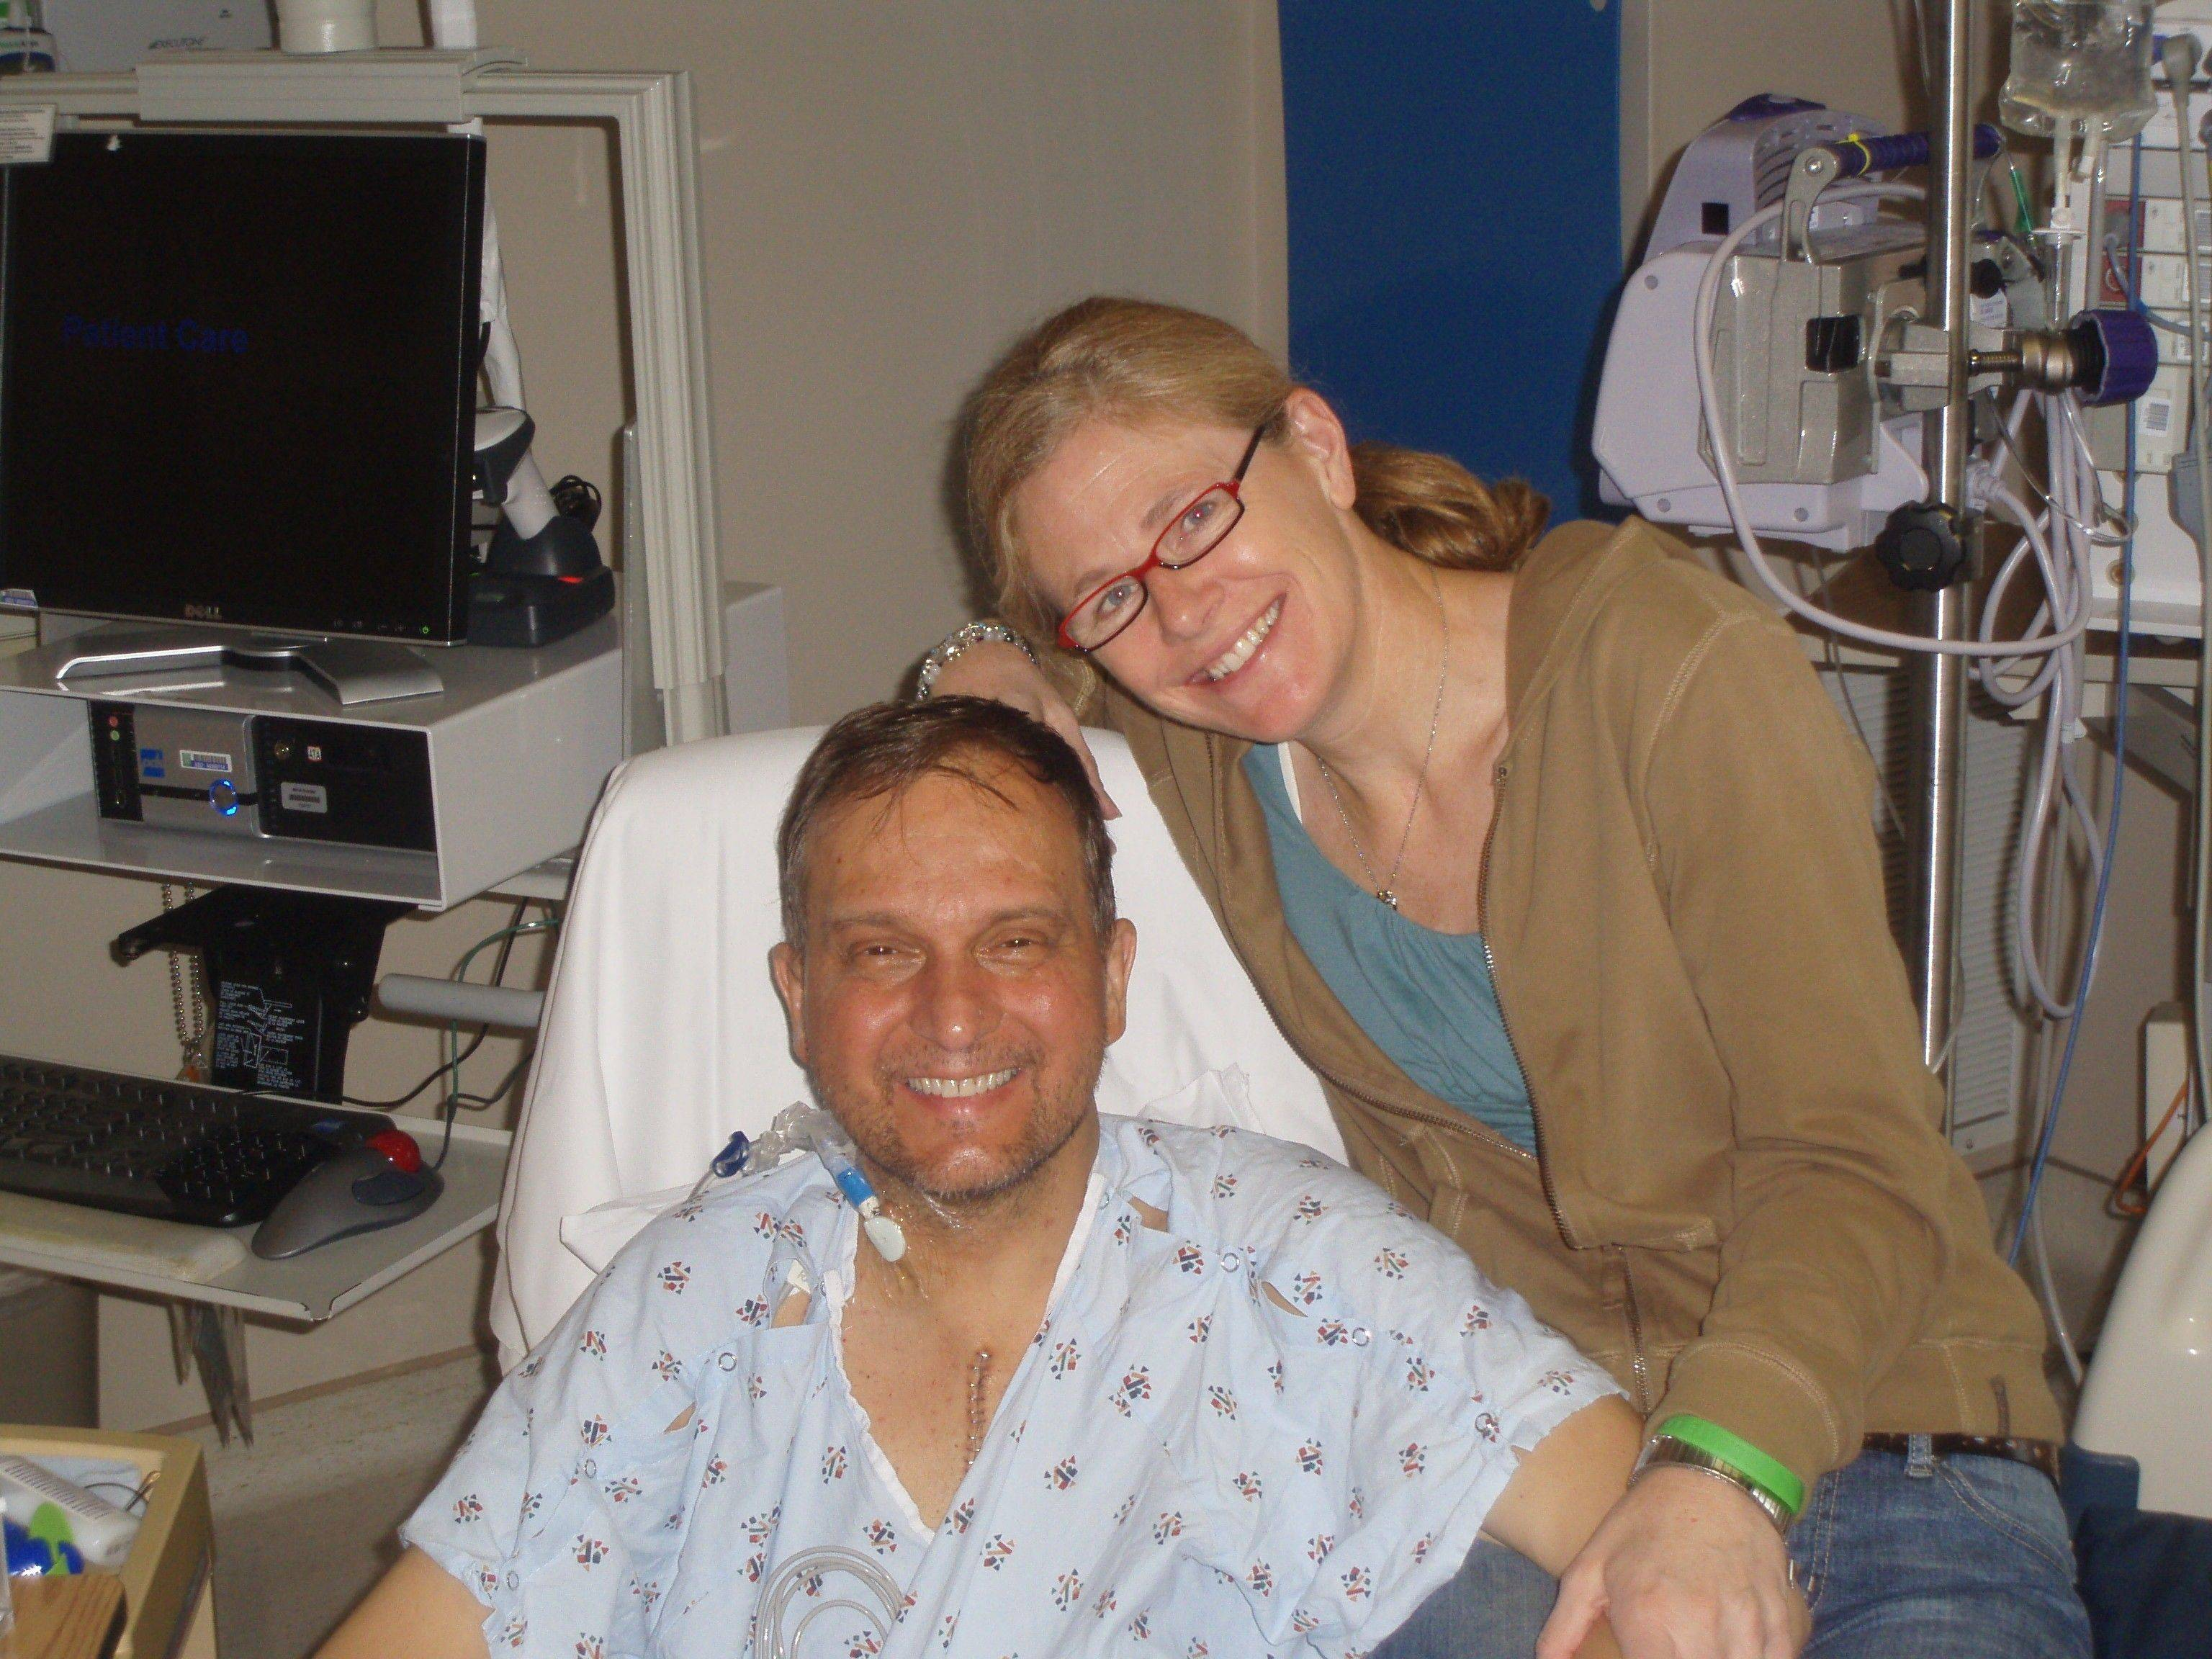 Bartlett's Kevin Lue recovers the day after his heart tranplant with the support of his wife, Maureen. The couple found out a heart was available the day after their wedding.